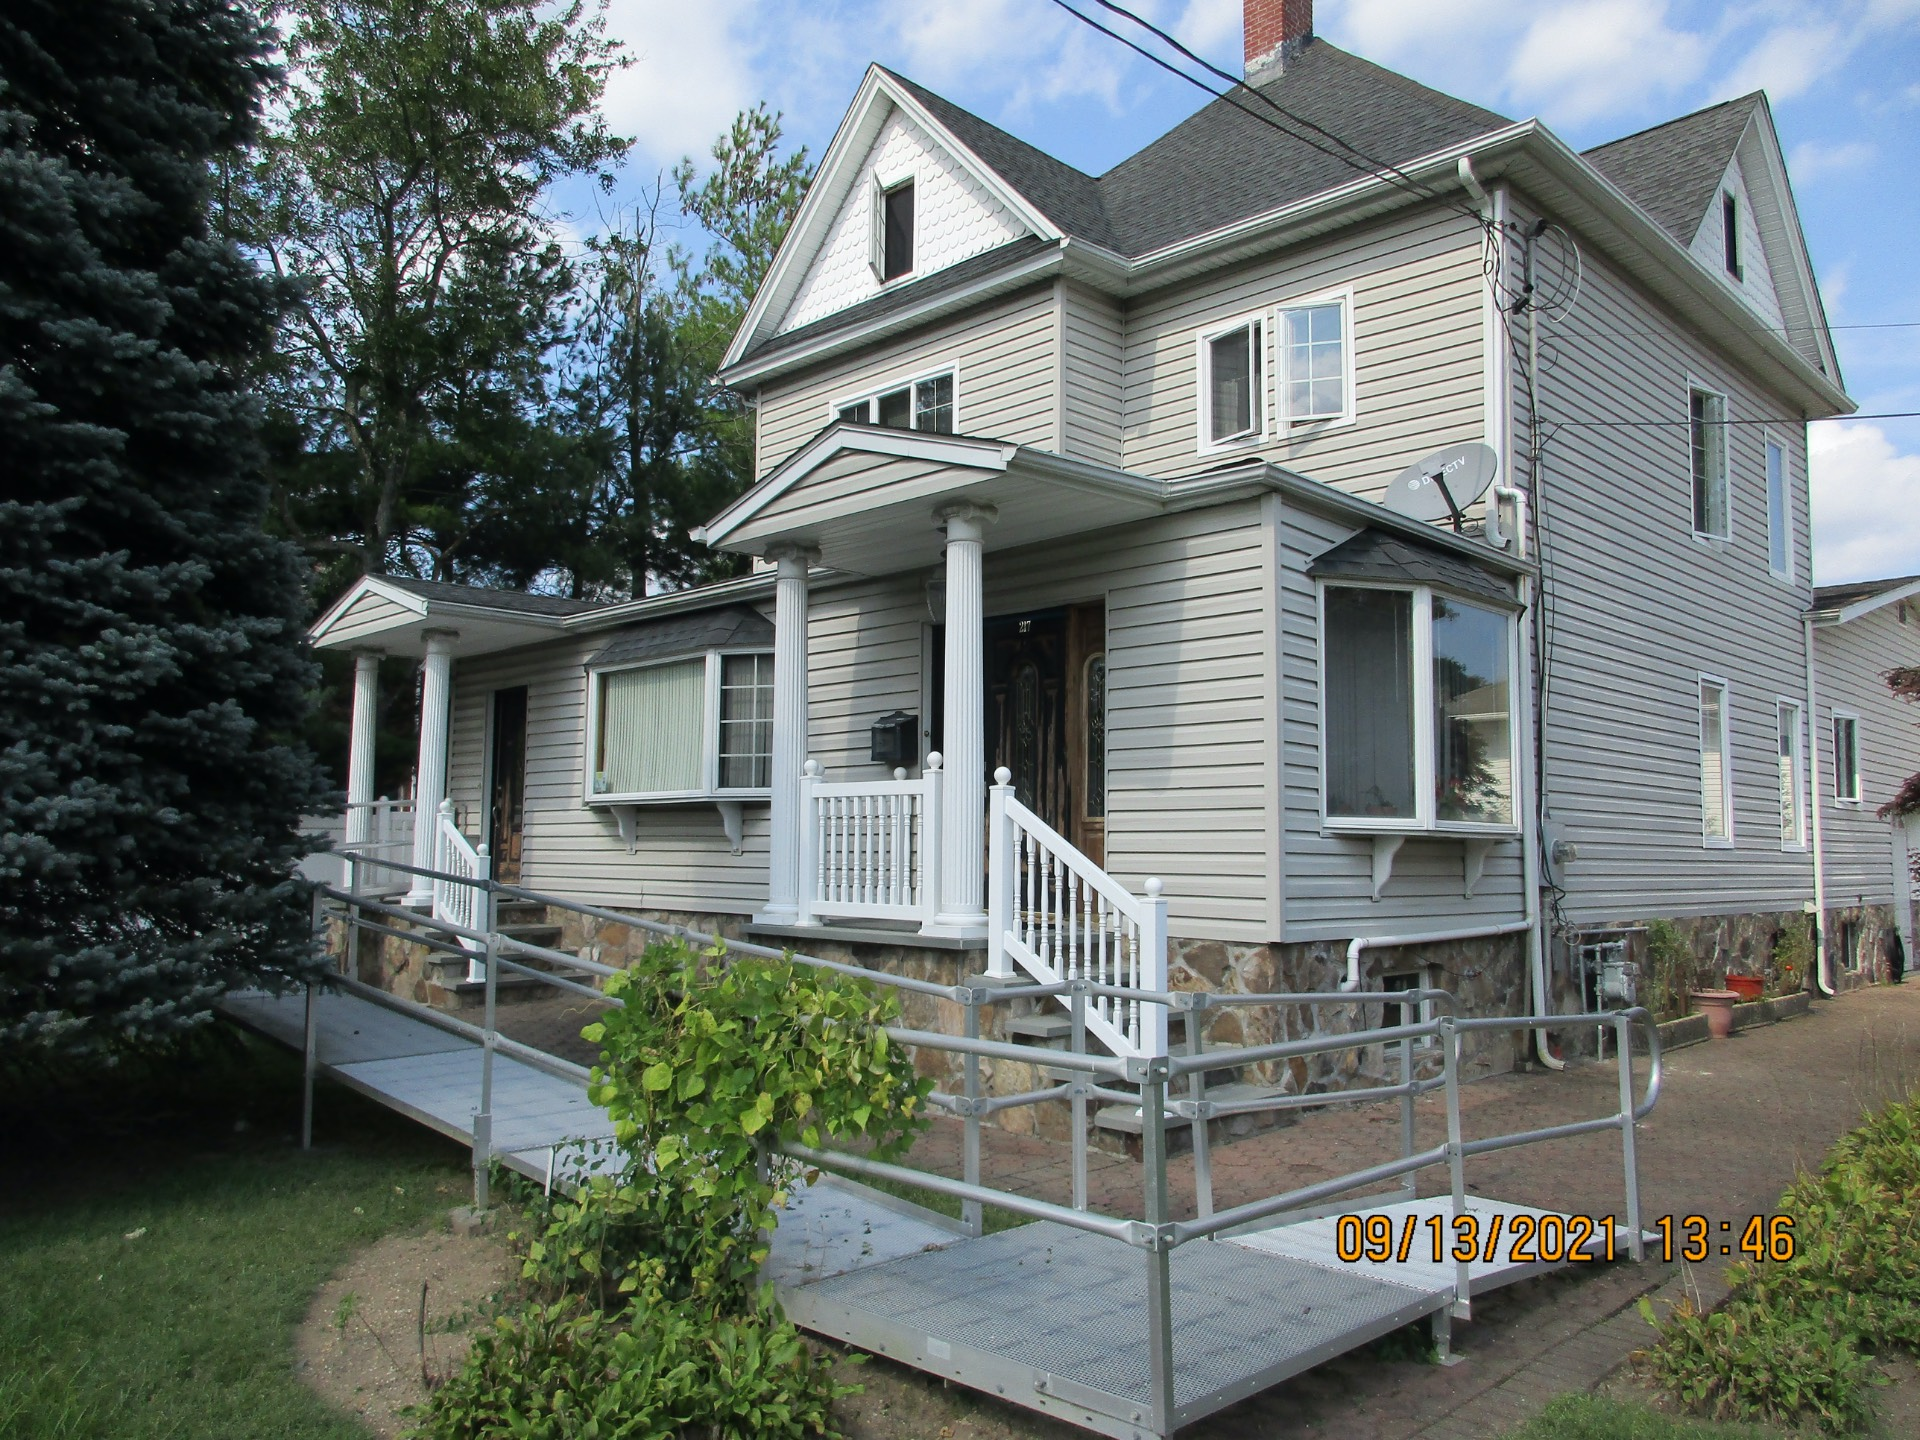 217 Lincoln Ave Property Photo 1